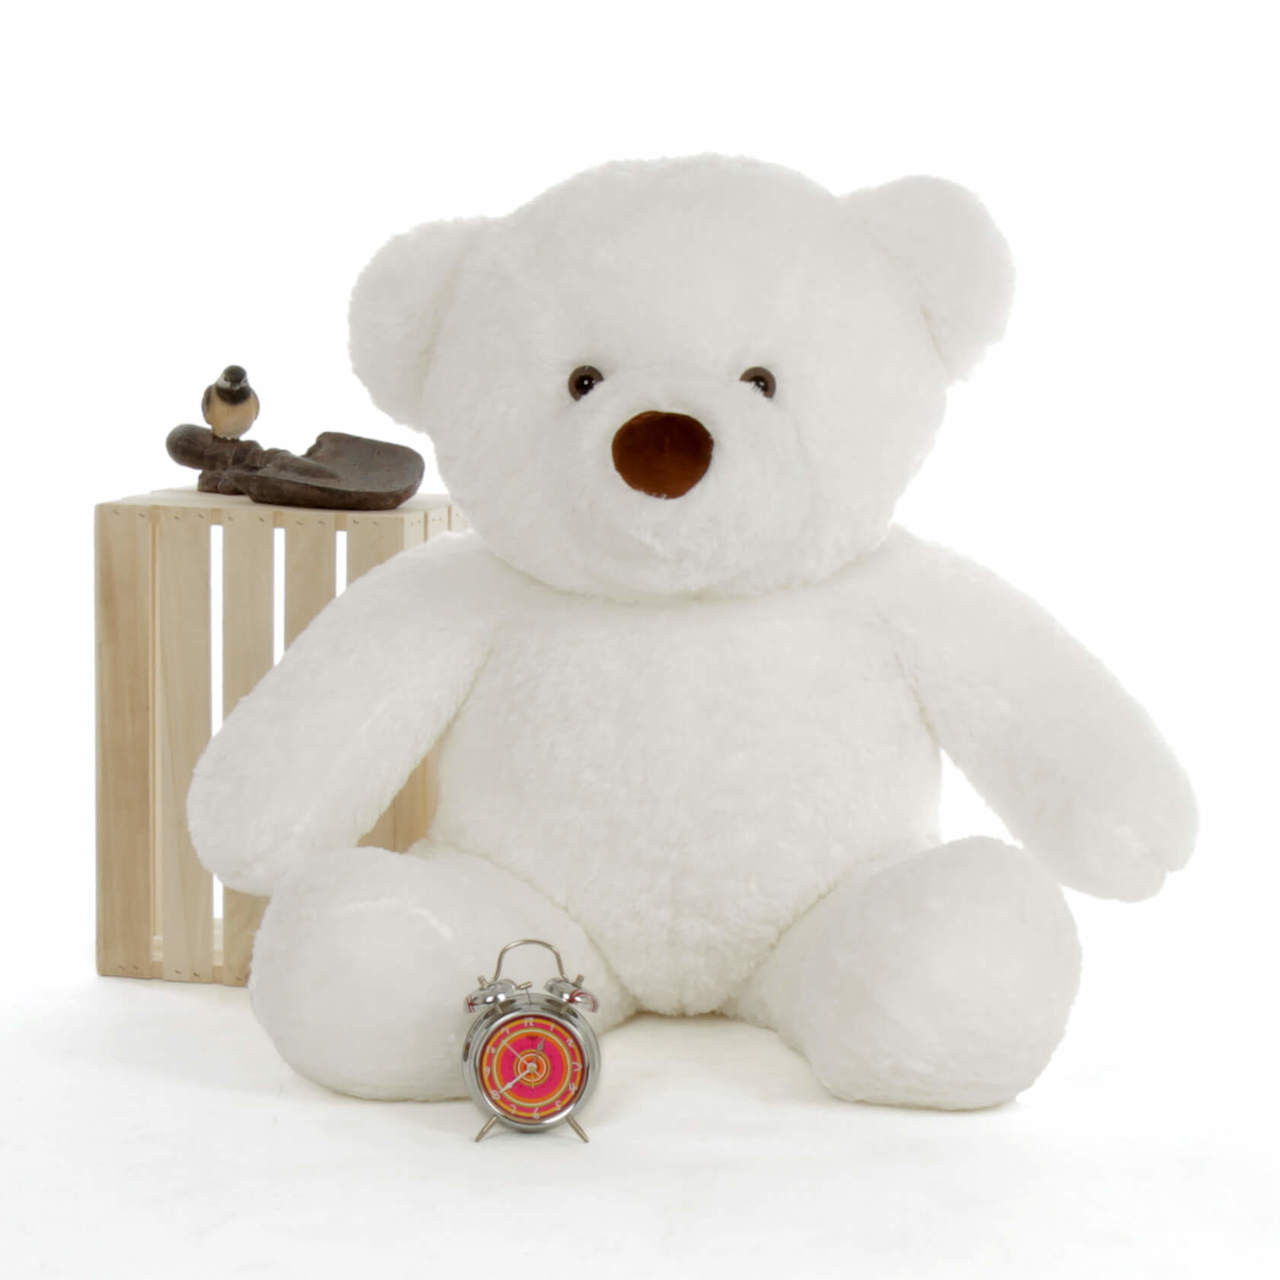 White 4 Foot Giant Teddy Bear with Premium Fluffy Soft Fur